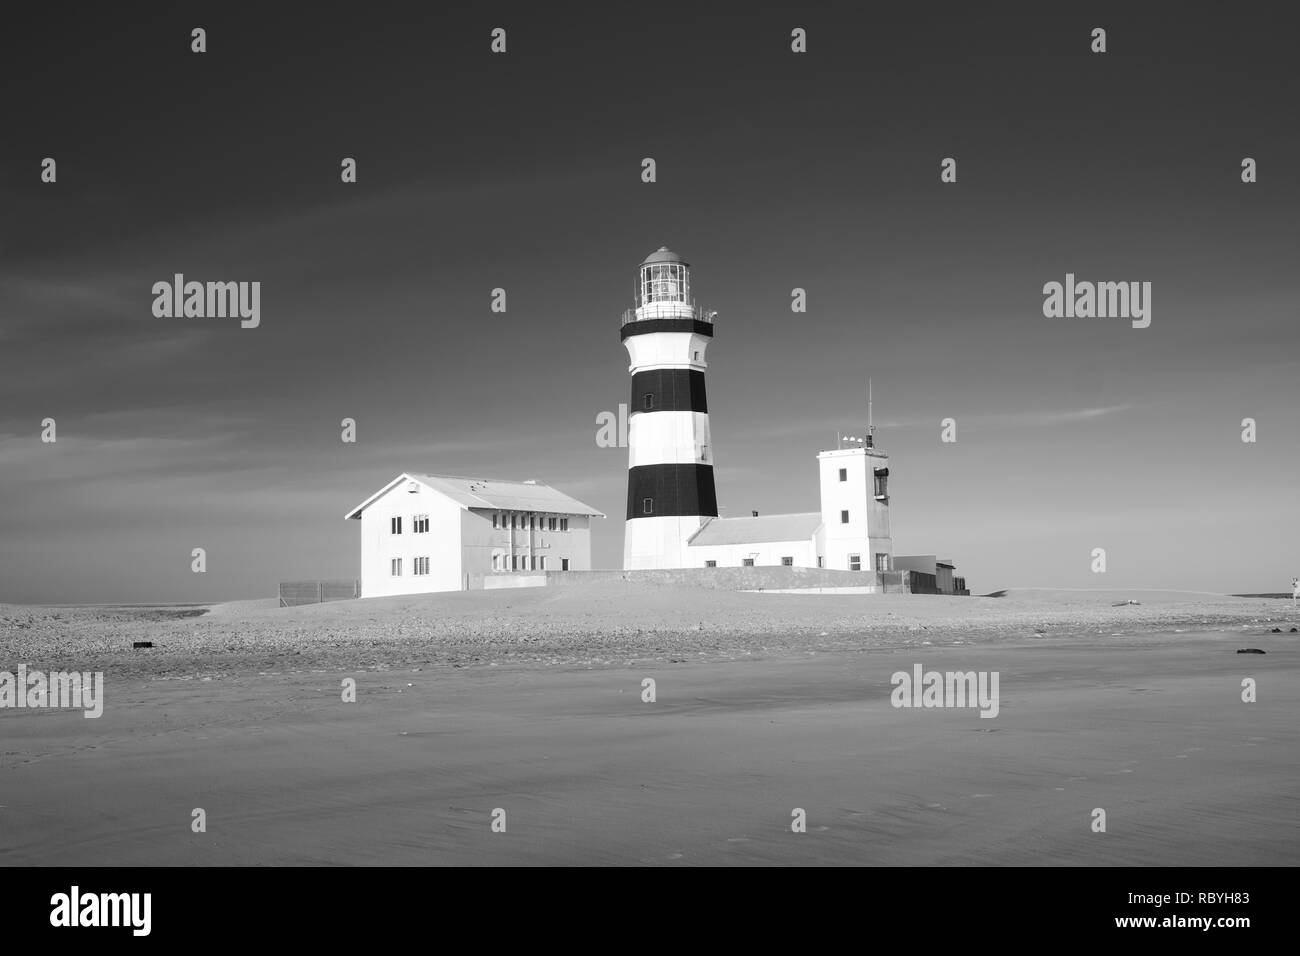 Cape Recife Lighthouse, South Africa - Stock Image